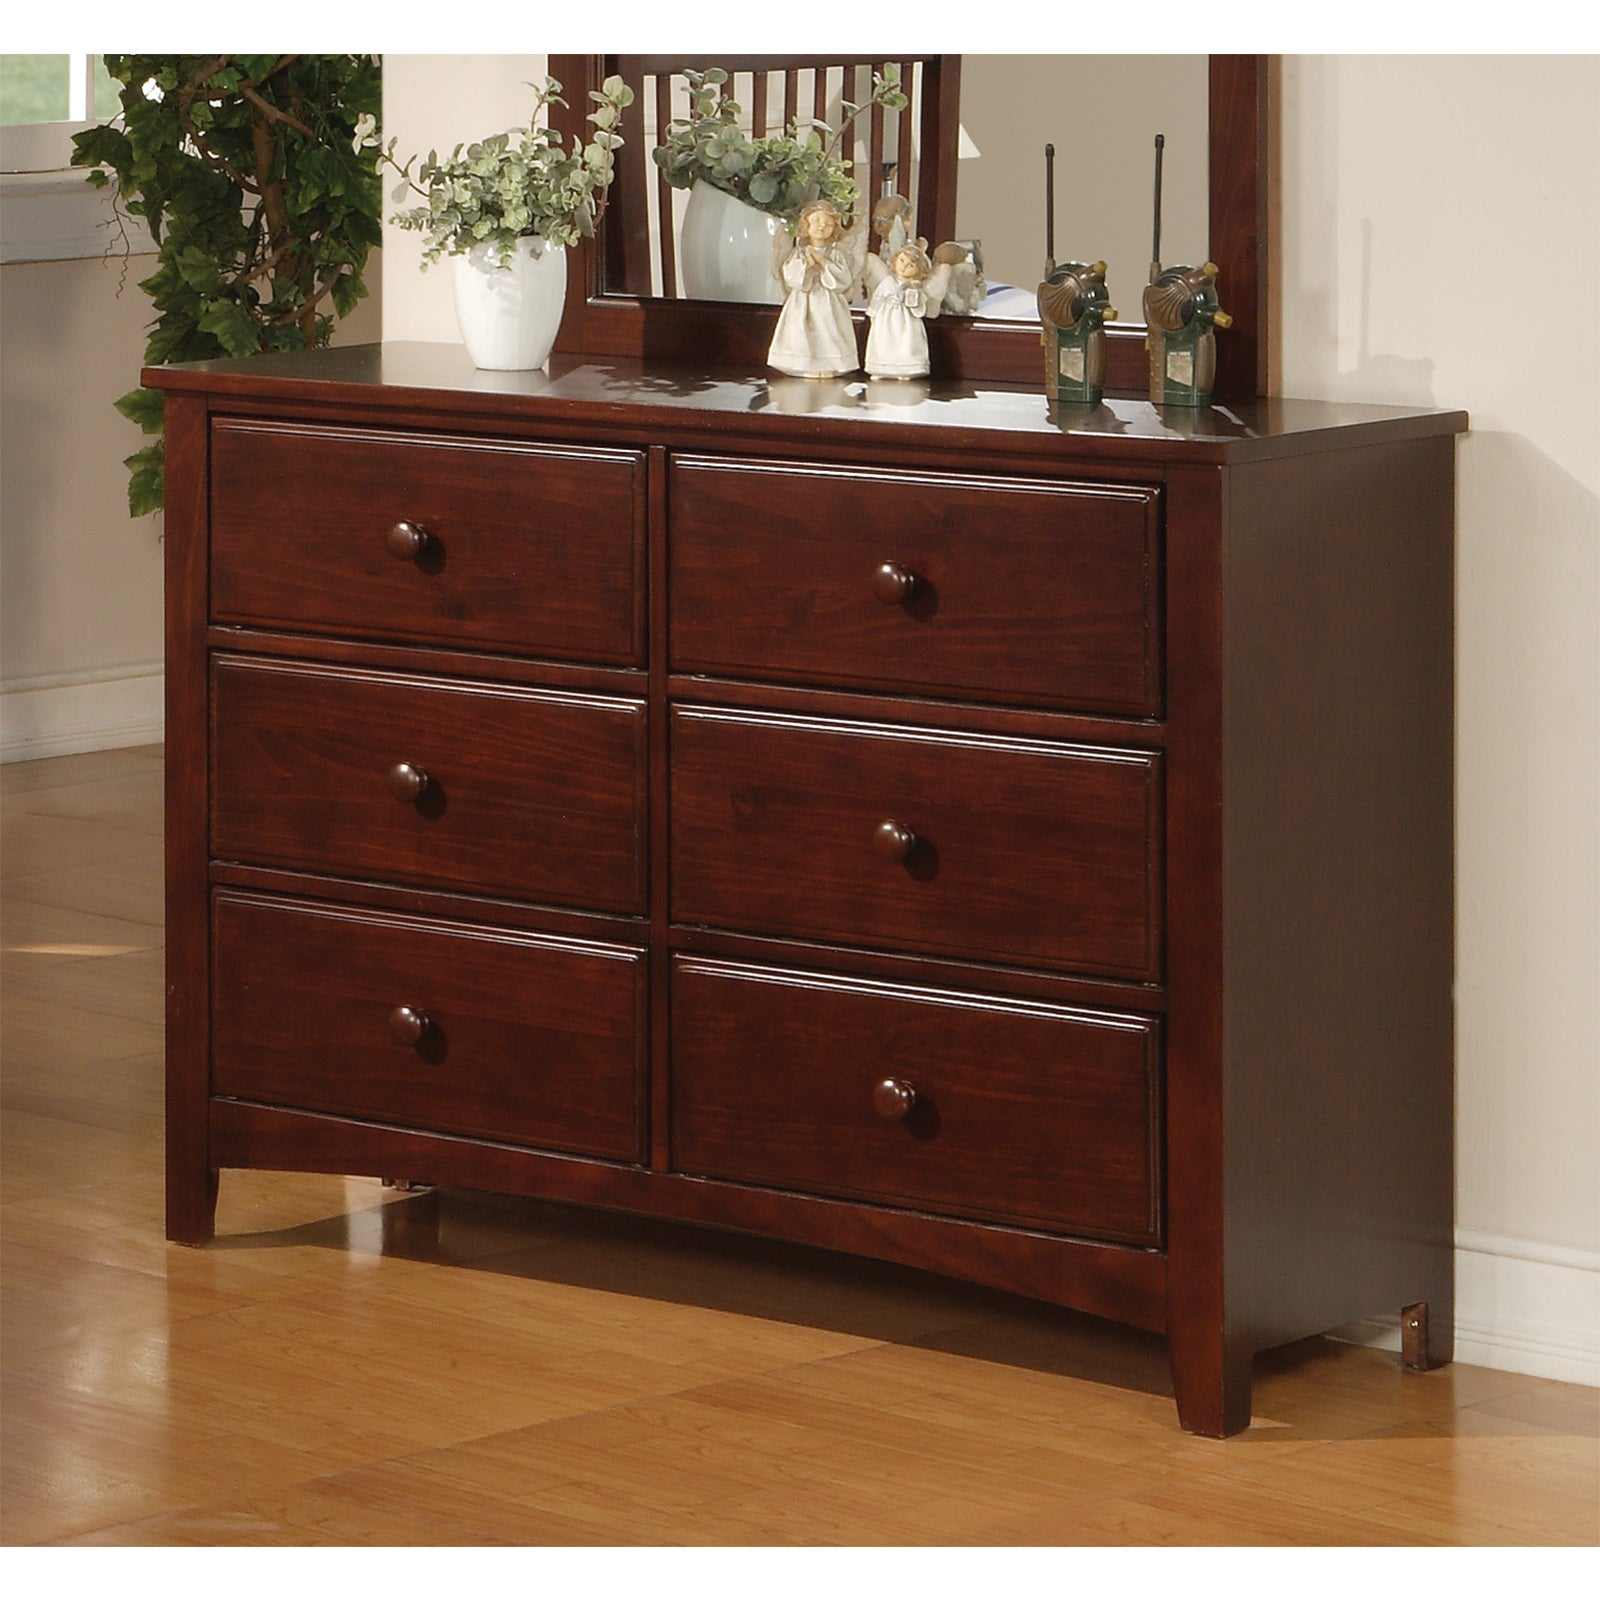 Picture of: Shop Coaster Company Cherry Brown Mdf 6 Drawer Dresser Overstock 12509078